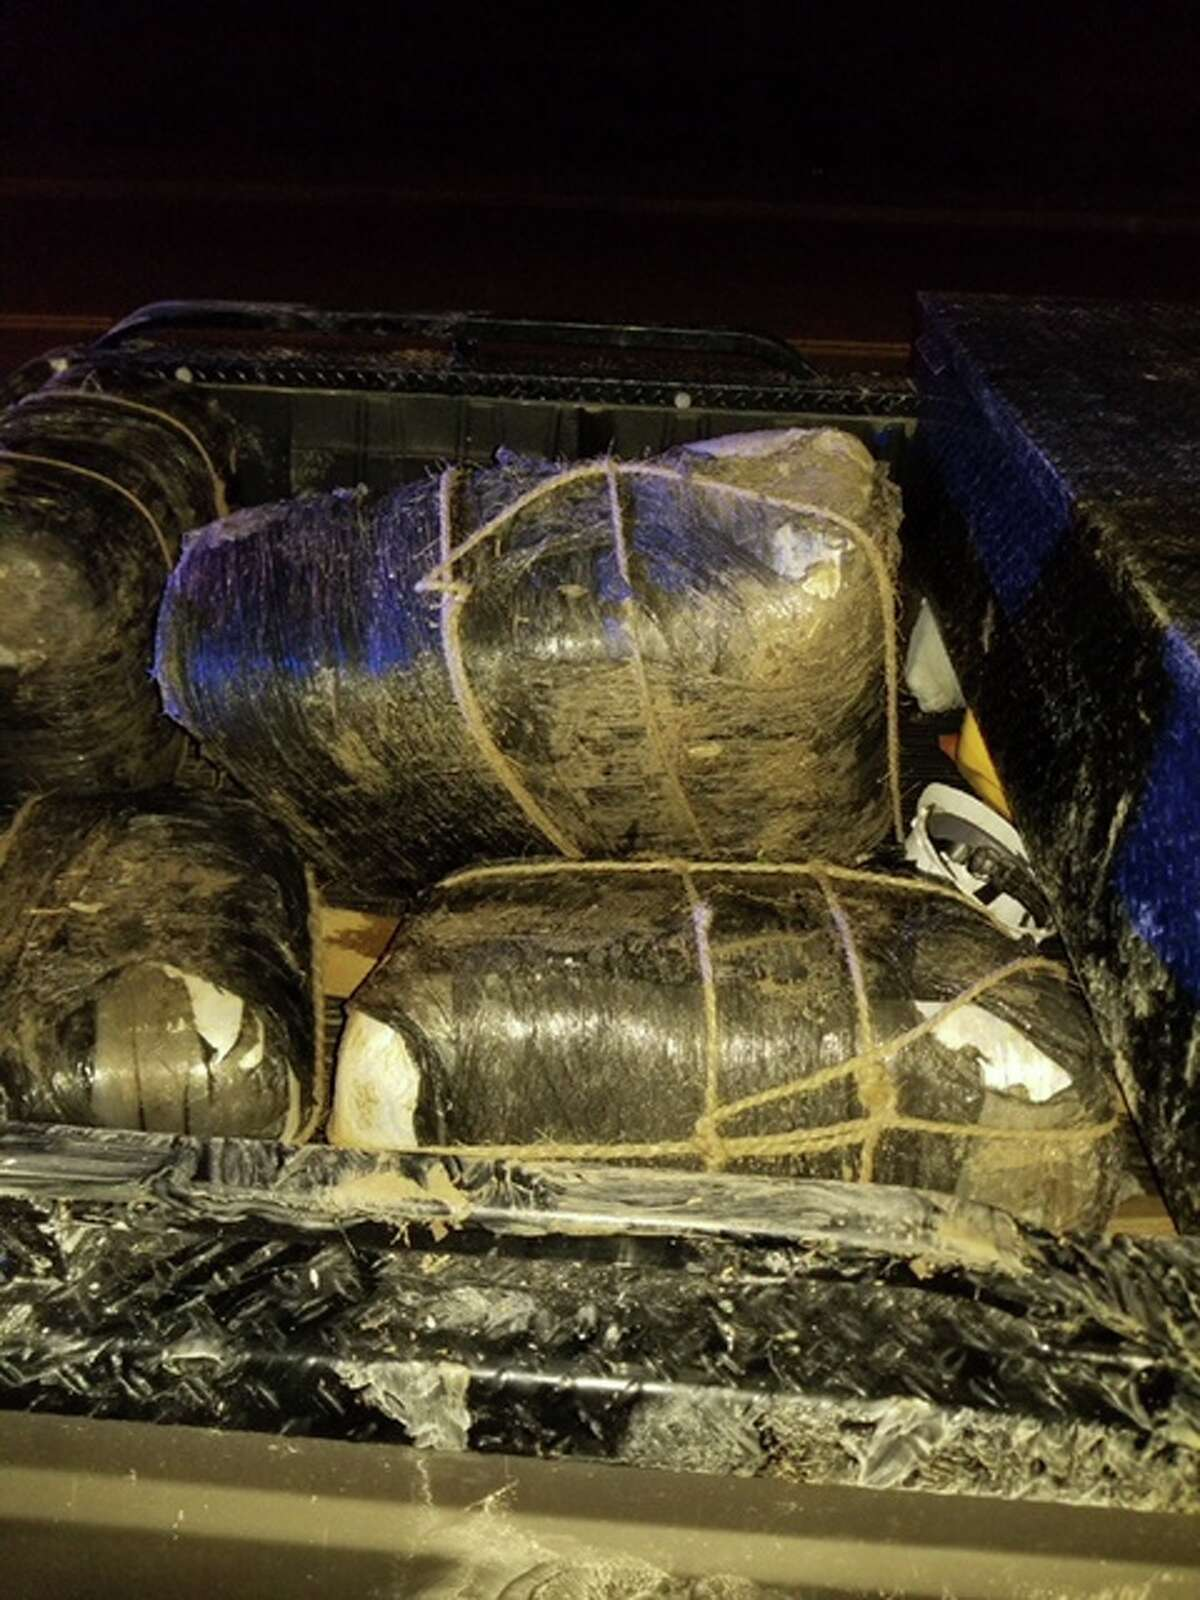 Border Patrol agents discovered numerous people loading nine bundles of marijuana into a Ford F-250 pickup truck.